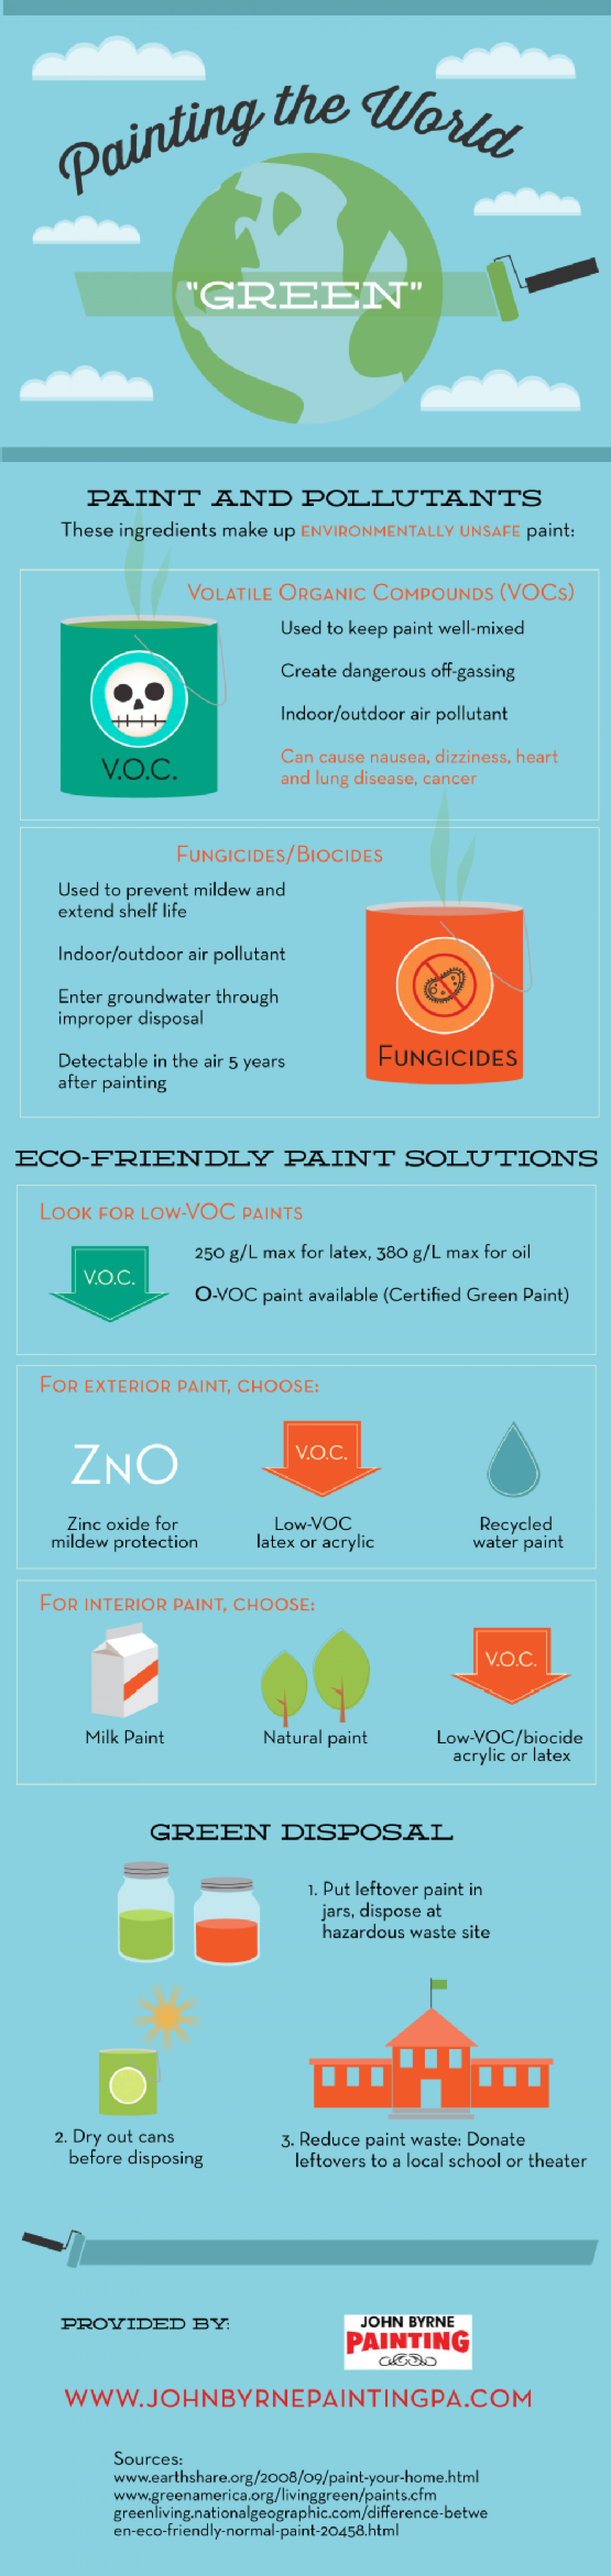 "Painting the World ""Green"" Infographic"